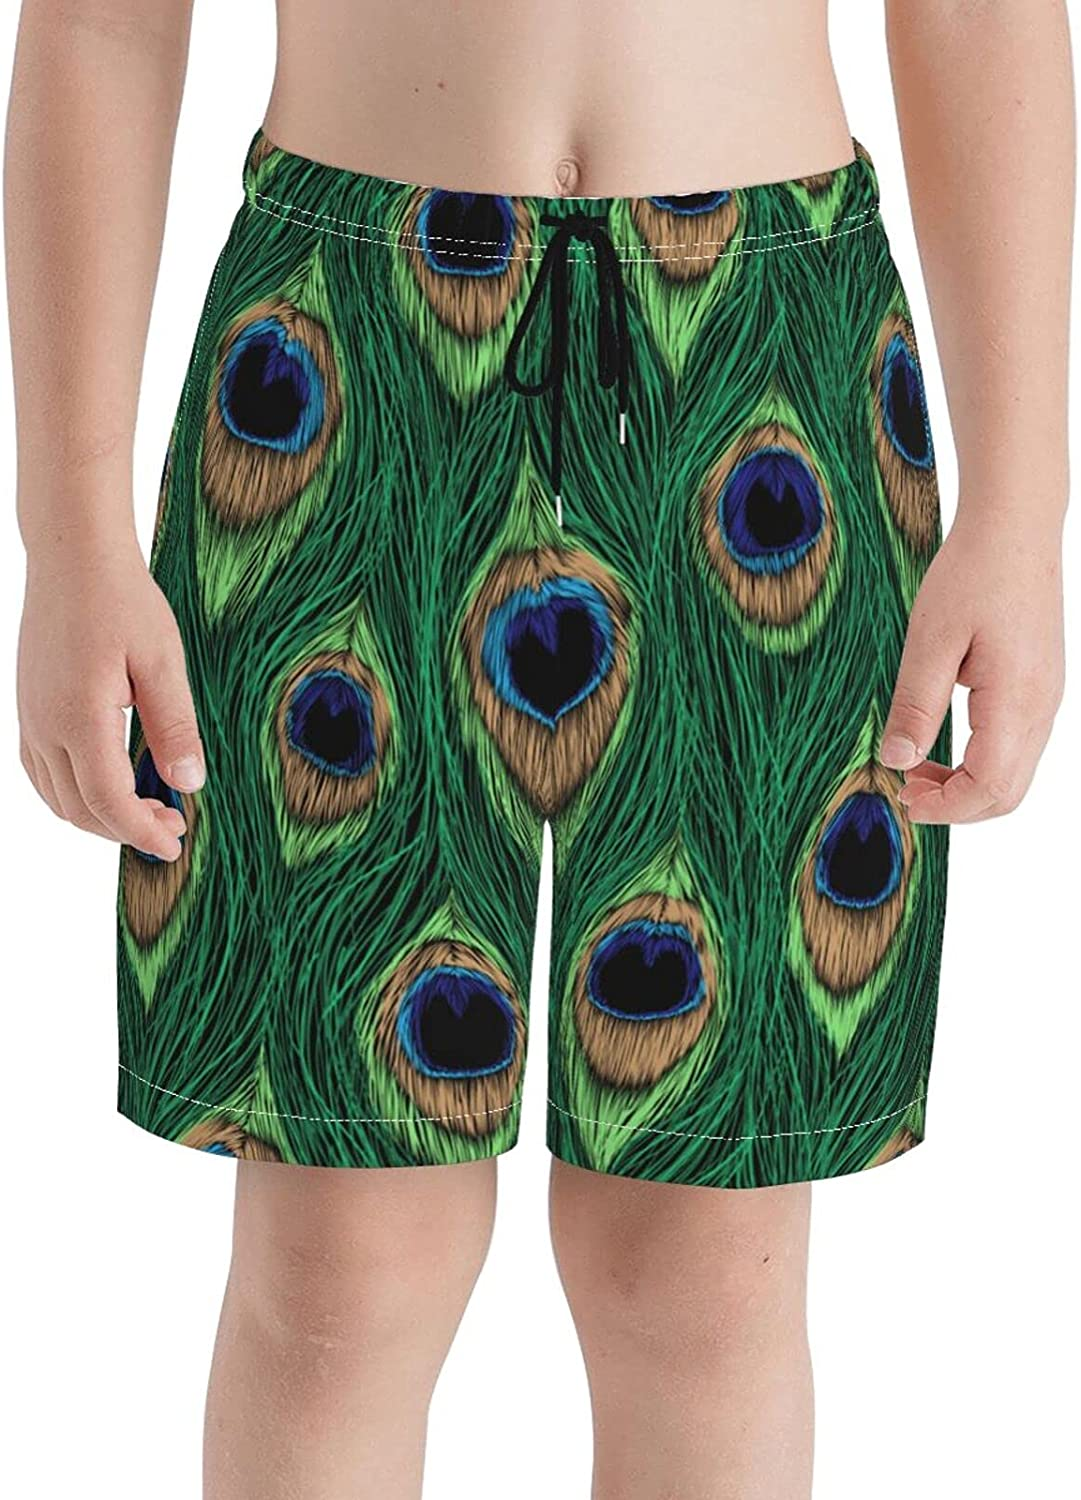 Fairy UMI Peacock Feather Boys Quick Dry Swim Trunks Youth Print Beach Surfing Board Shorts 7-20 Years